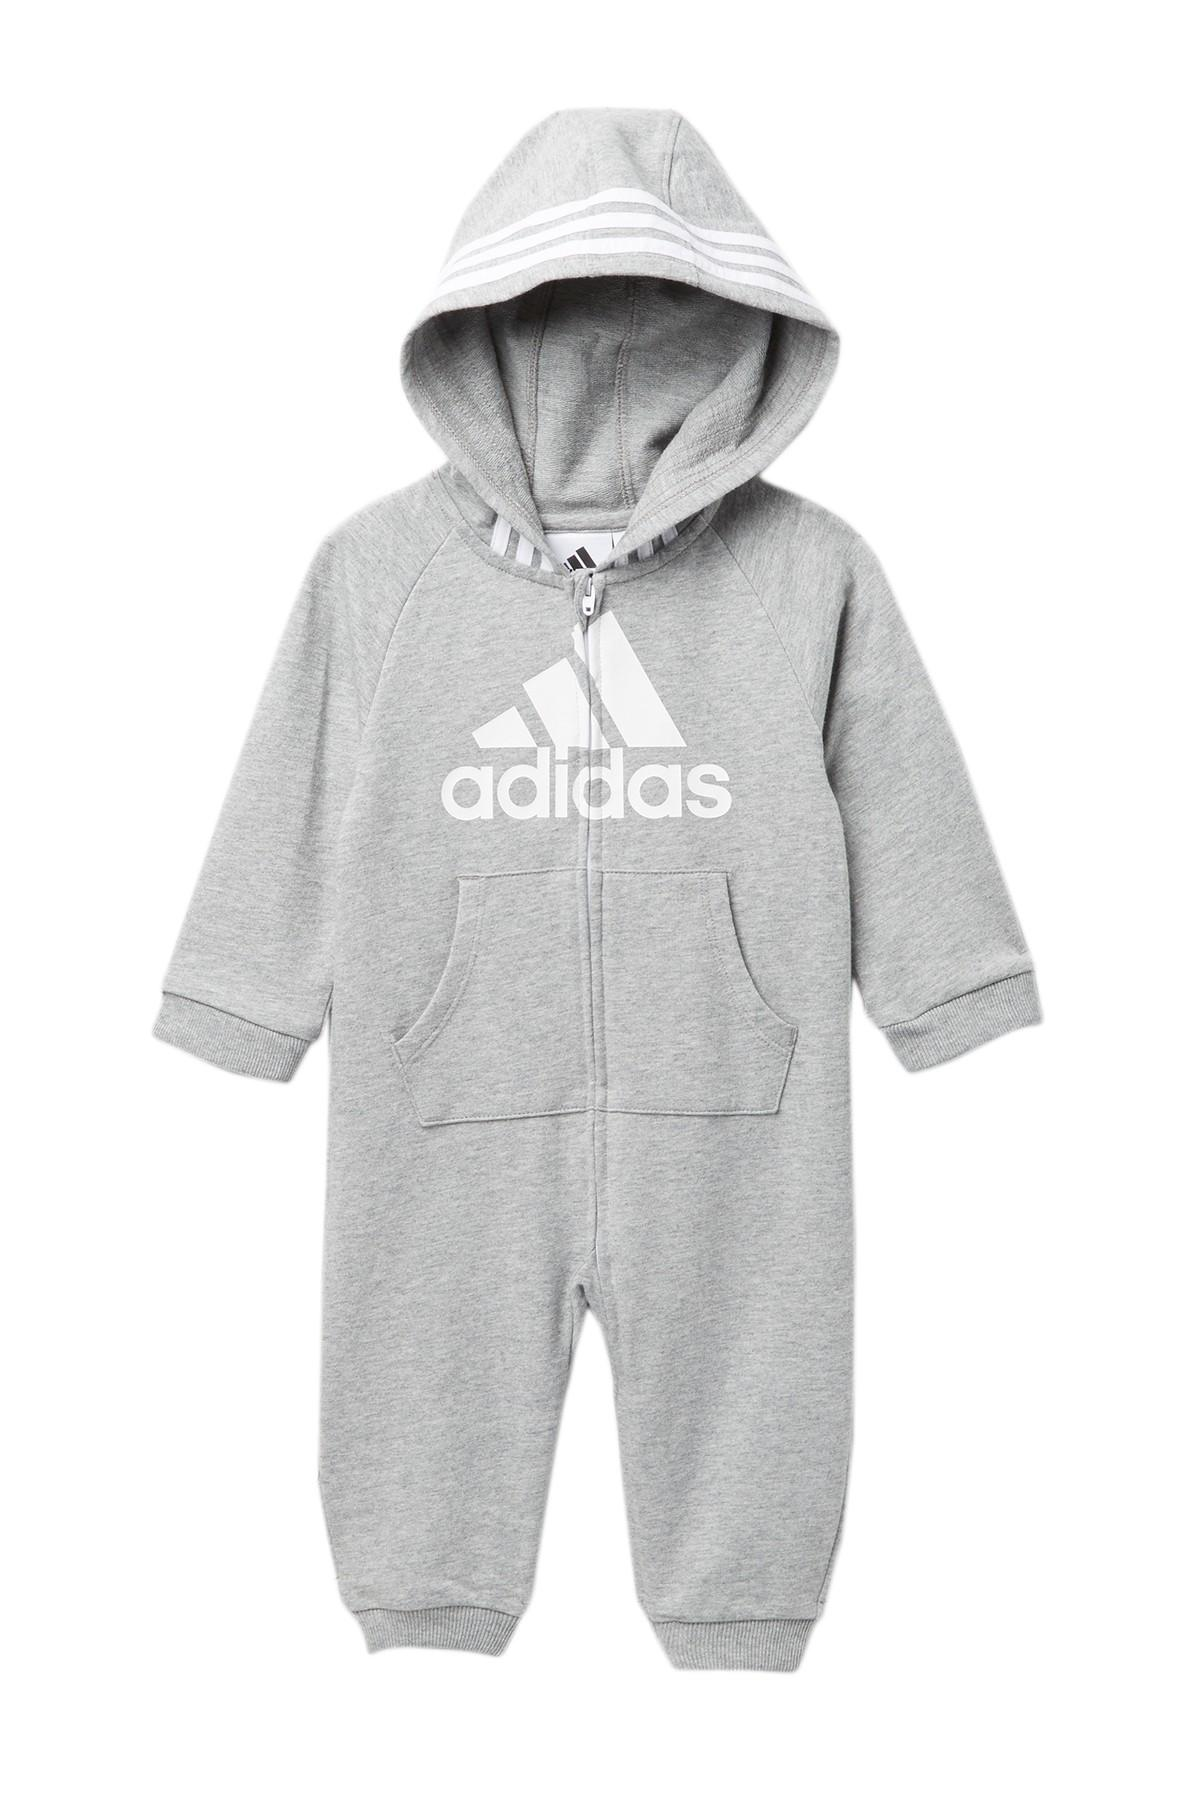 5c2db559b adidas Hooded Coverall (baby Boys) in Gray - Lyst